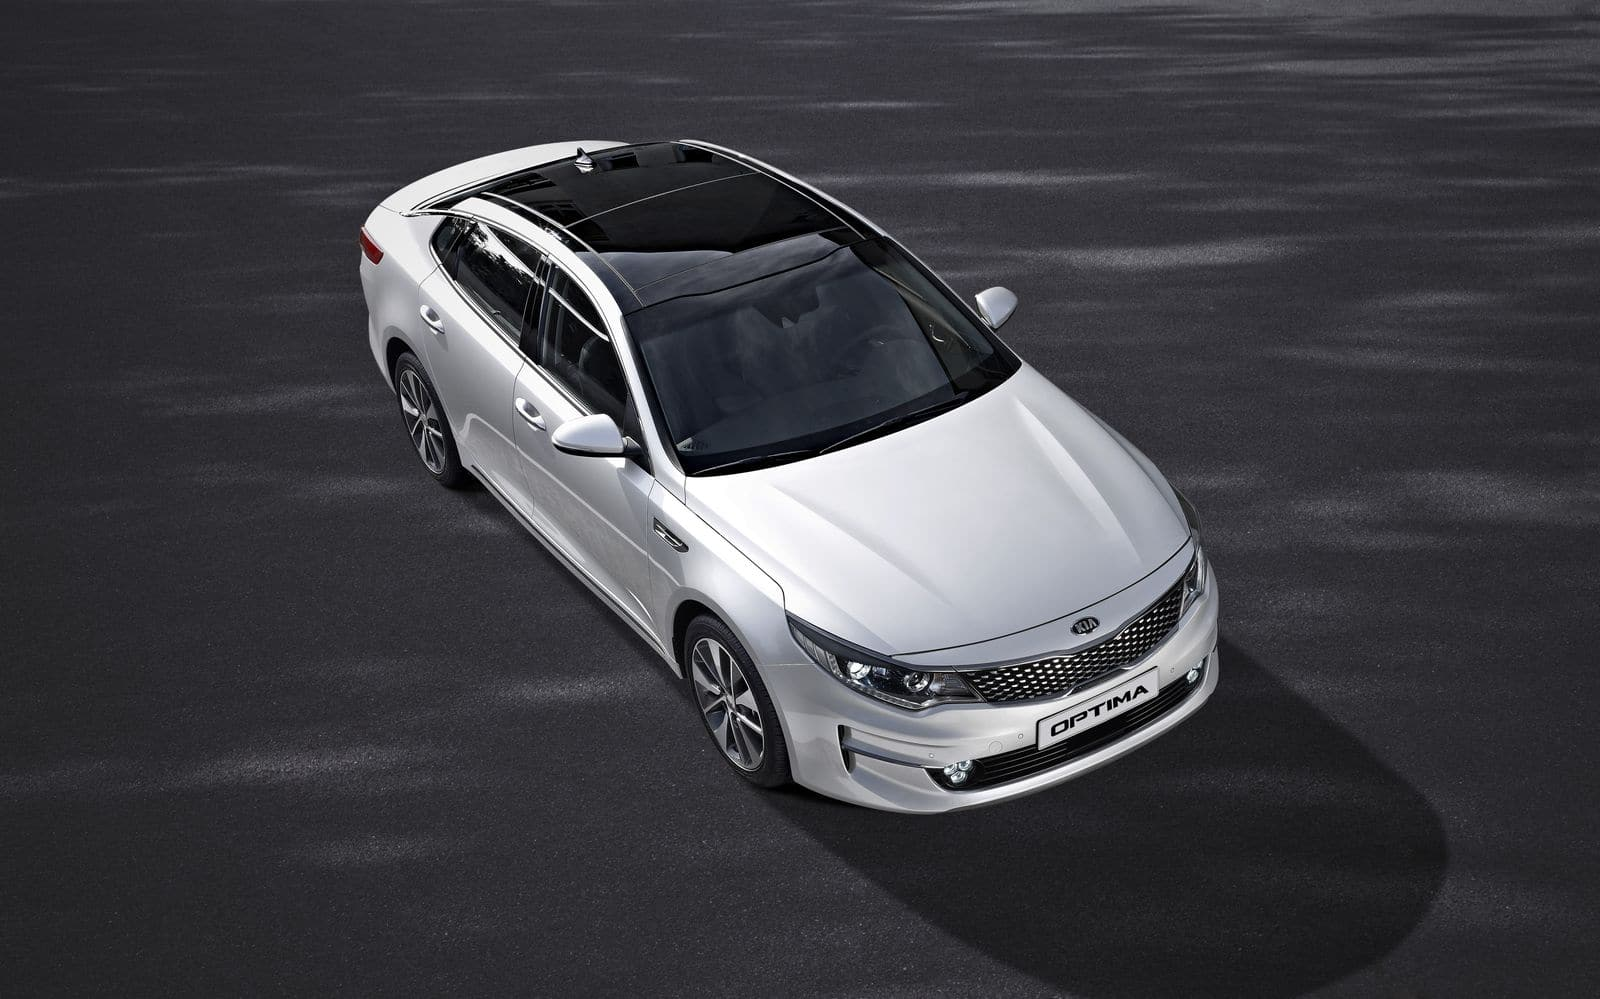 La nouvelle Kia Optima arrive en Europe